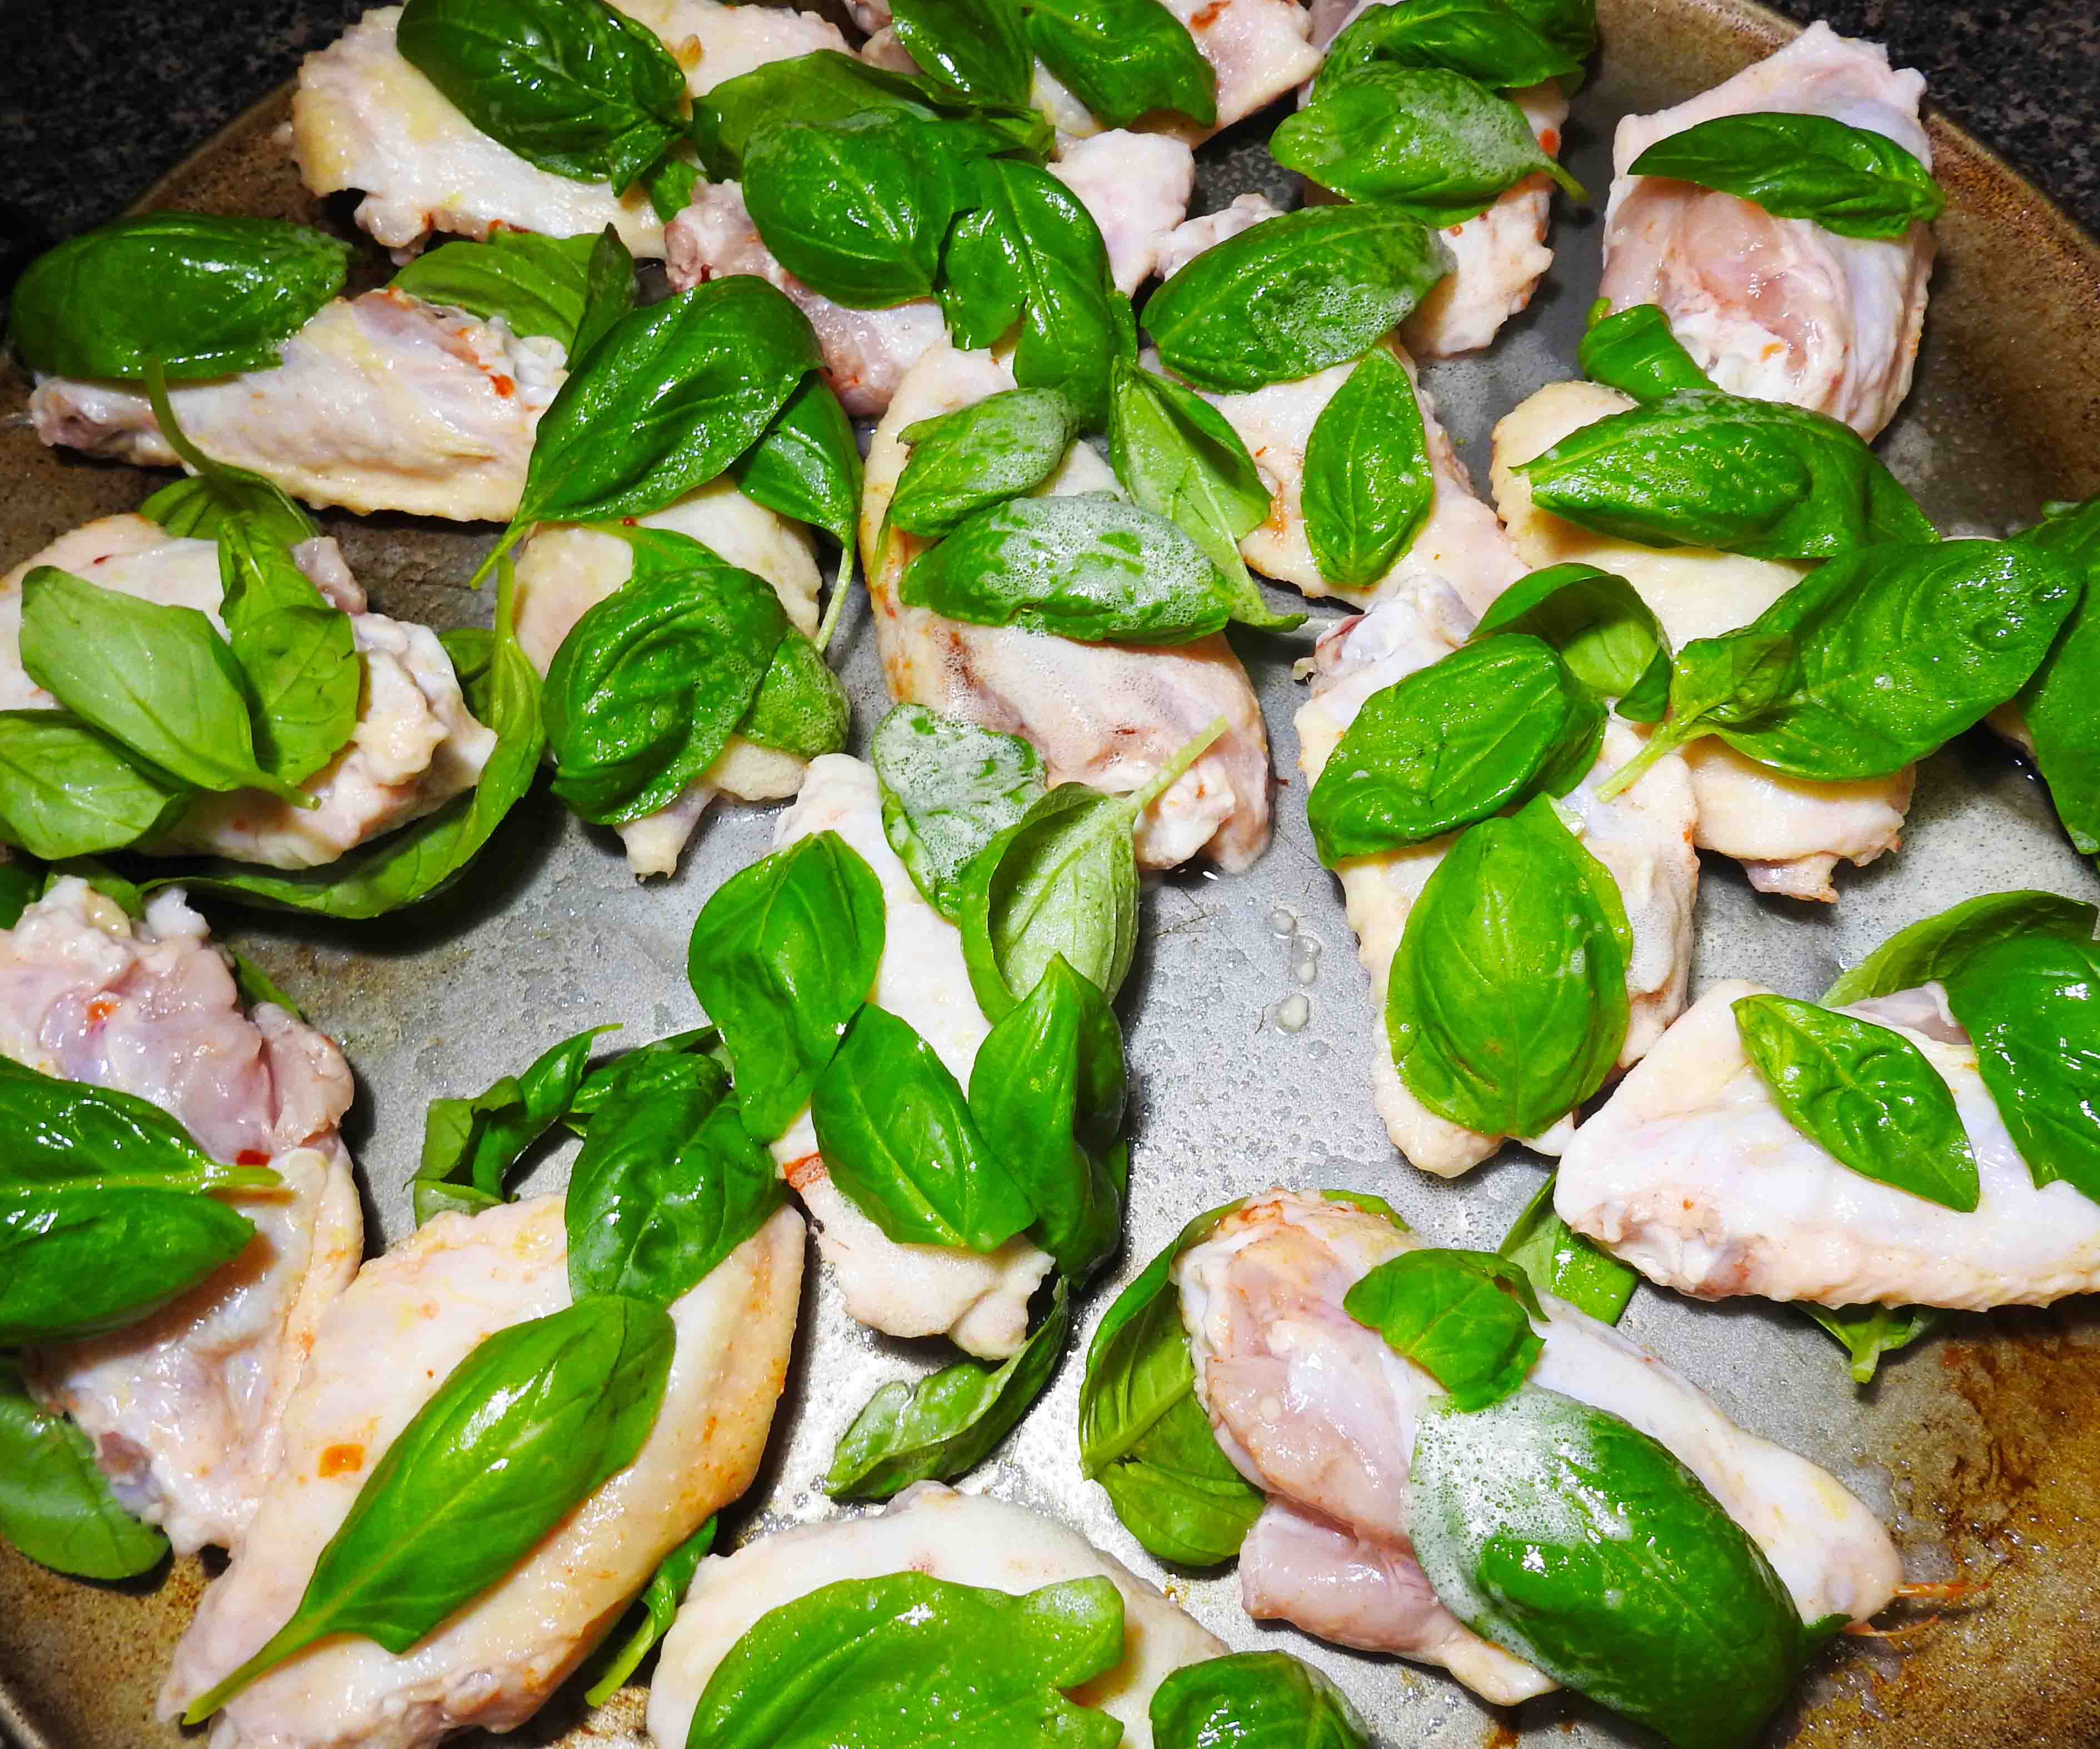 Adding Basil to Chicken Wings for Thai Basil Chicken Wings